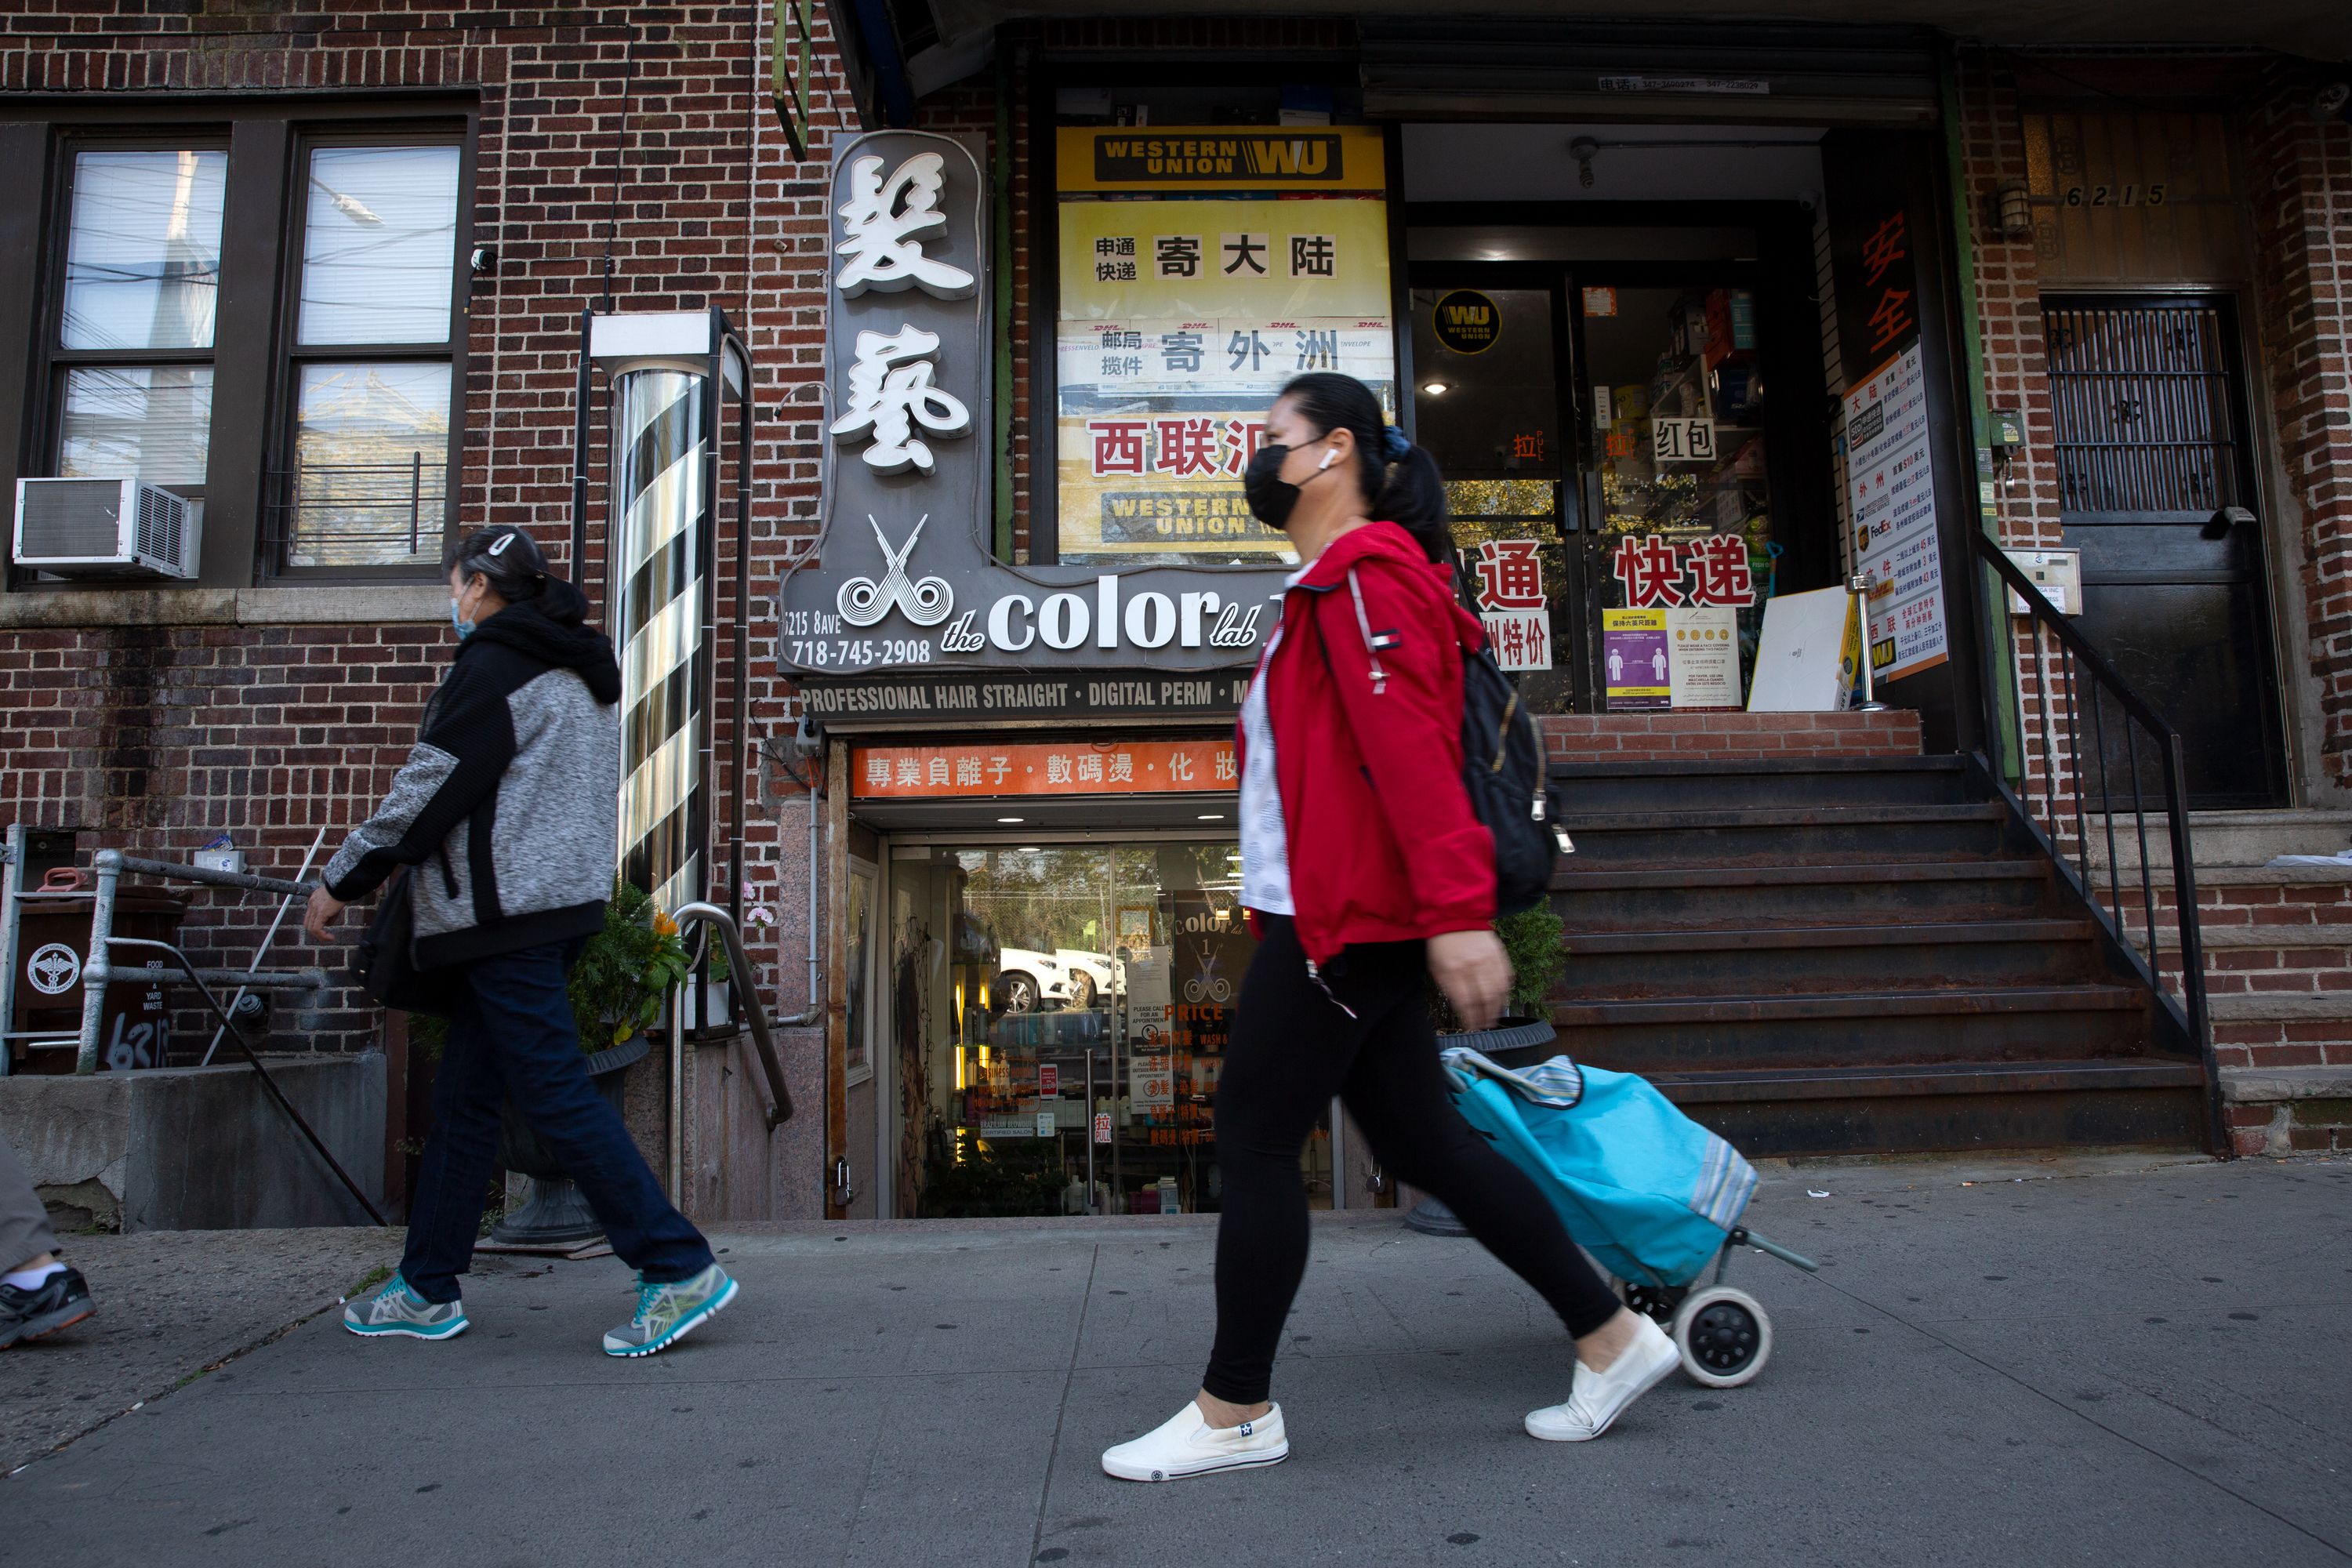 Some Sunset Park business owners along Eight Avenue expressed confusion over Gov. Andrew Cuomo's recent coronavirus restrictions, Oct. 7, 2020.